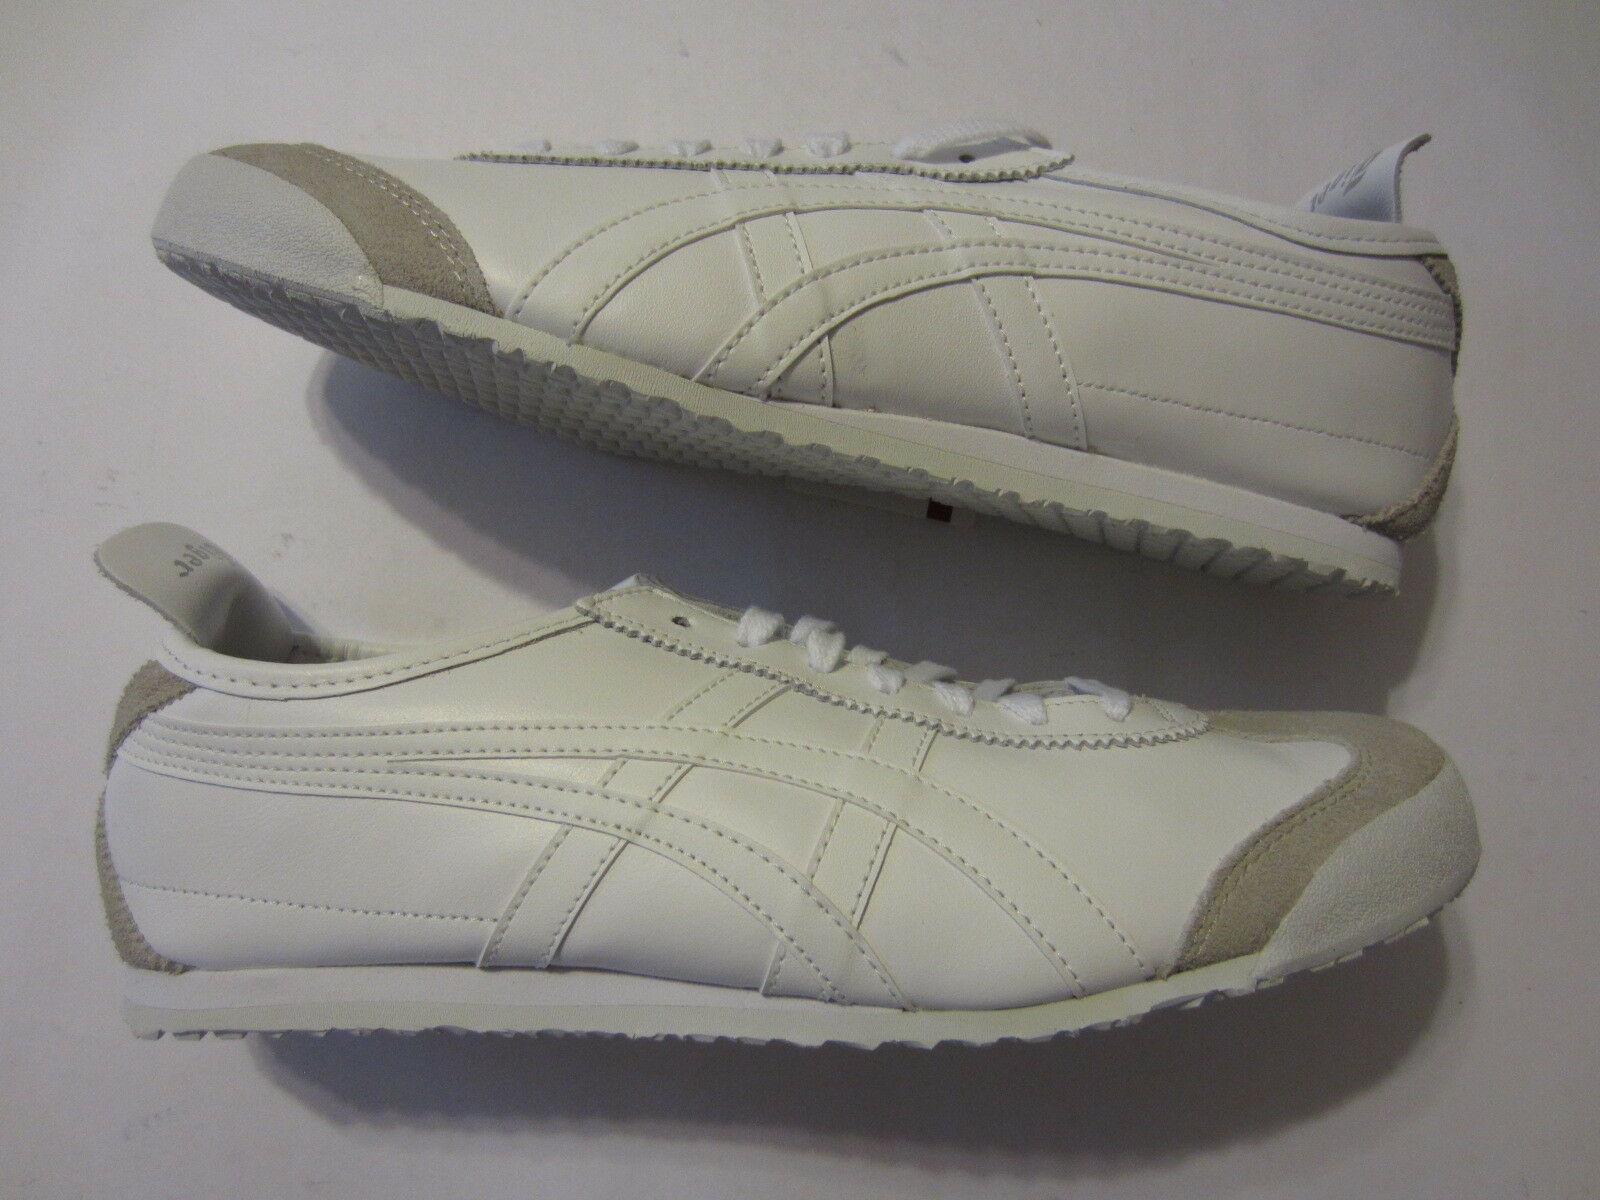 NEW Asics Onitsuka Tiger Mexico 66 mens shoe DL408 0101 sneaker white 44.5  10.5